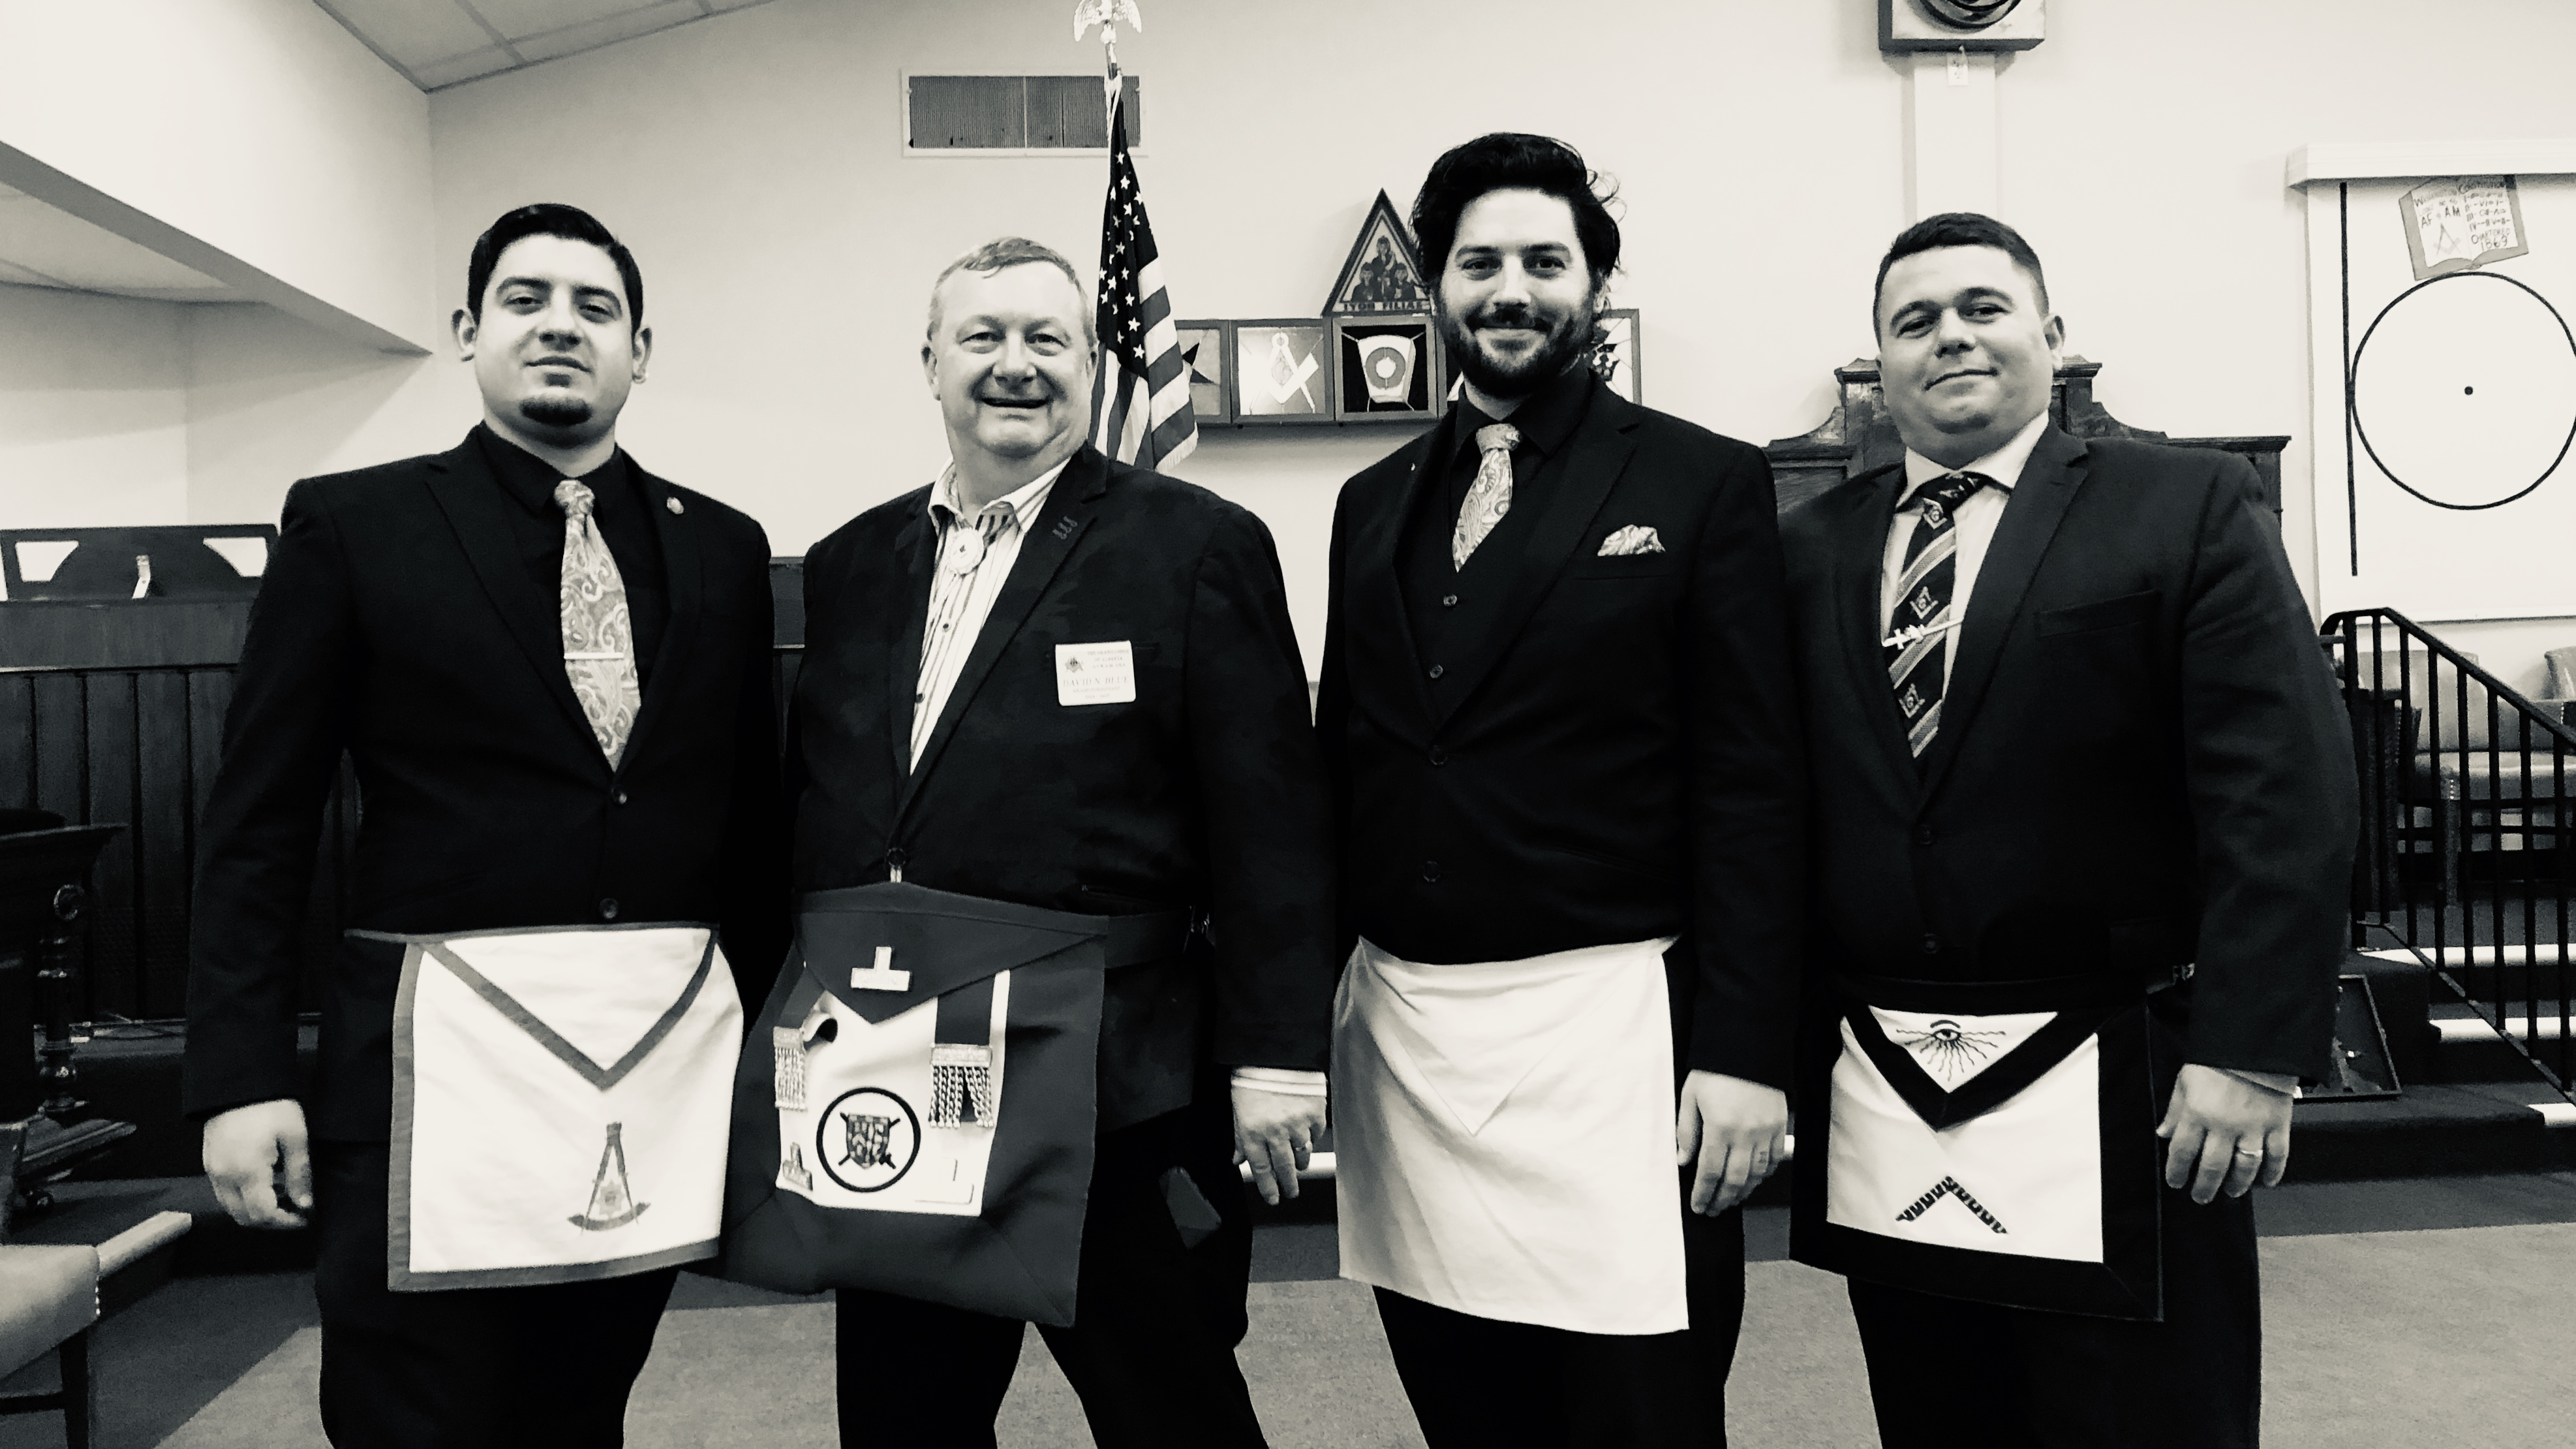 Kenton Visit to Sunnyside Lodge no. 163 - Official Photo